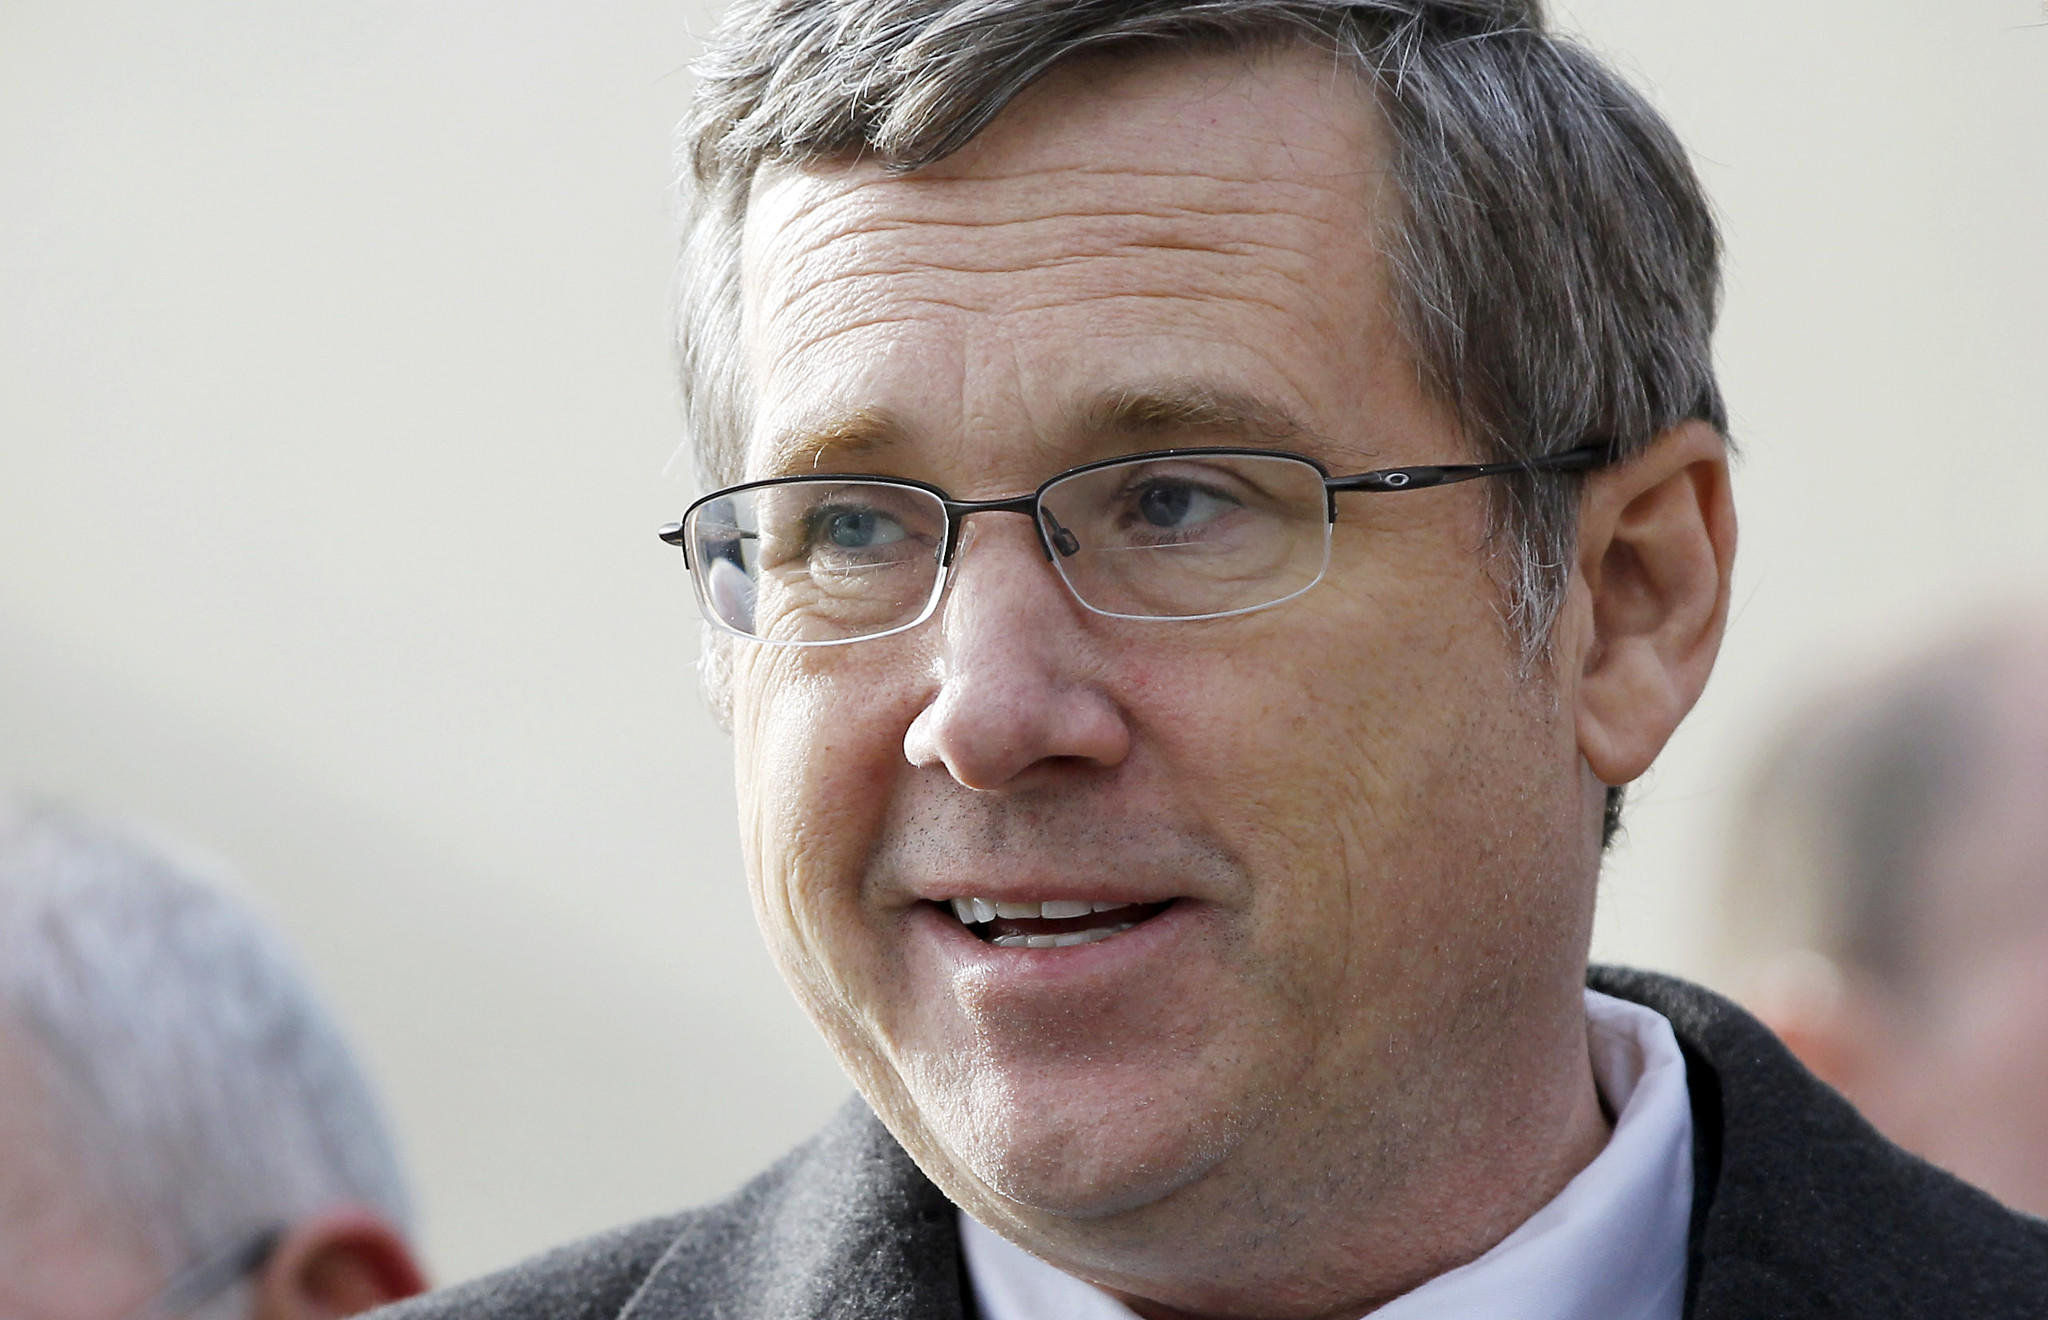 Sen. Mark Kirk in Washington, D.C. on Jan. 3, 2013.